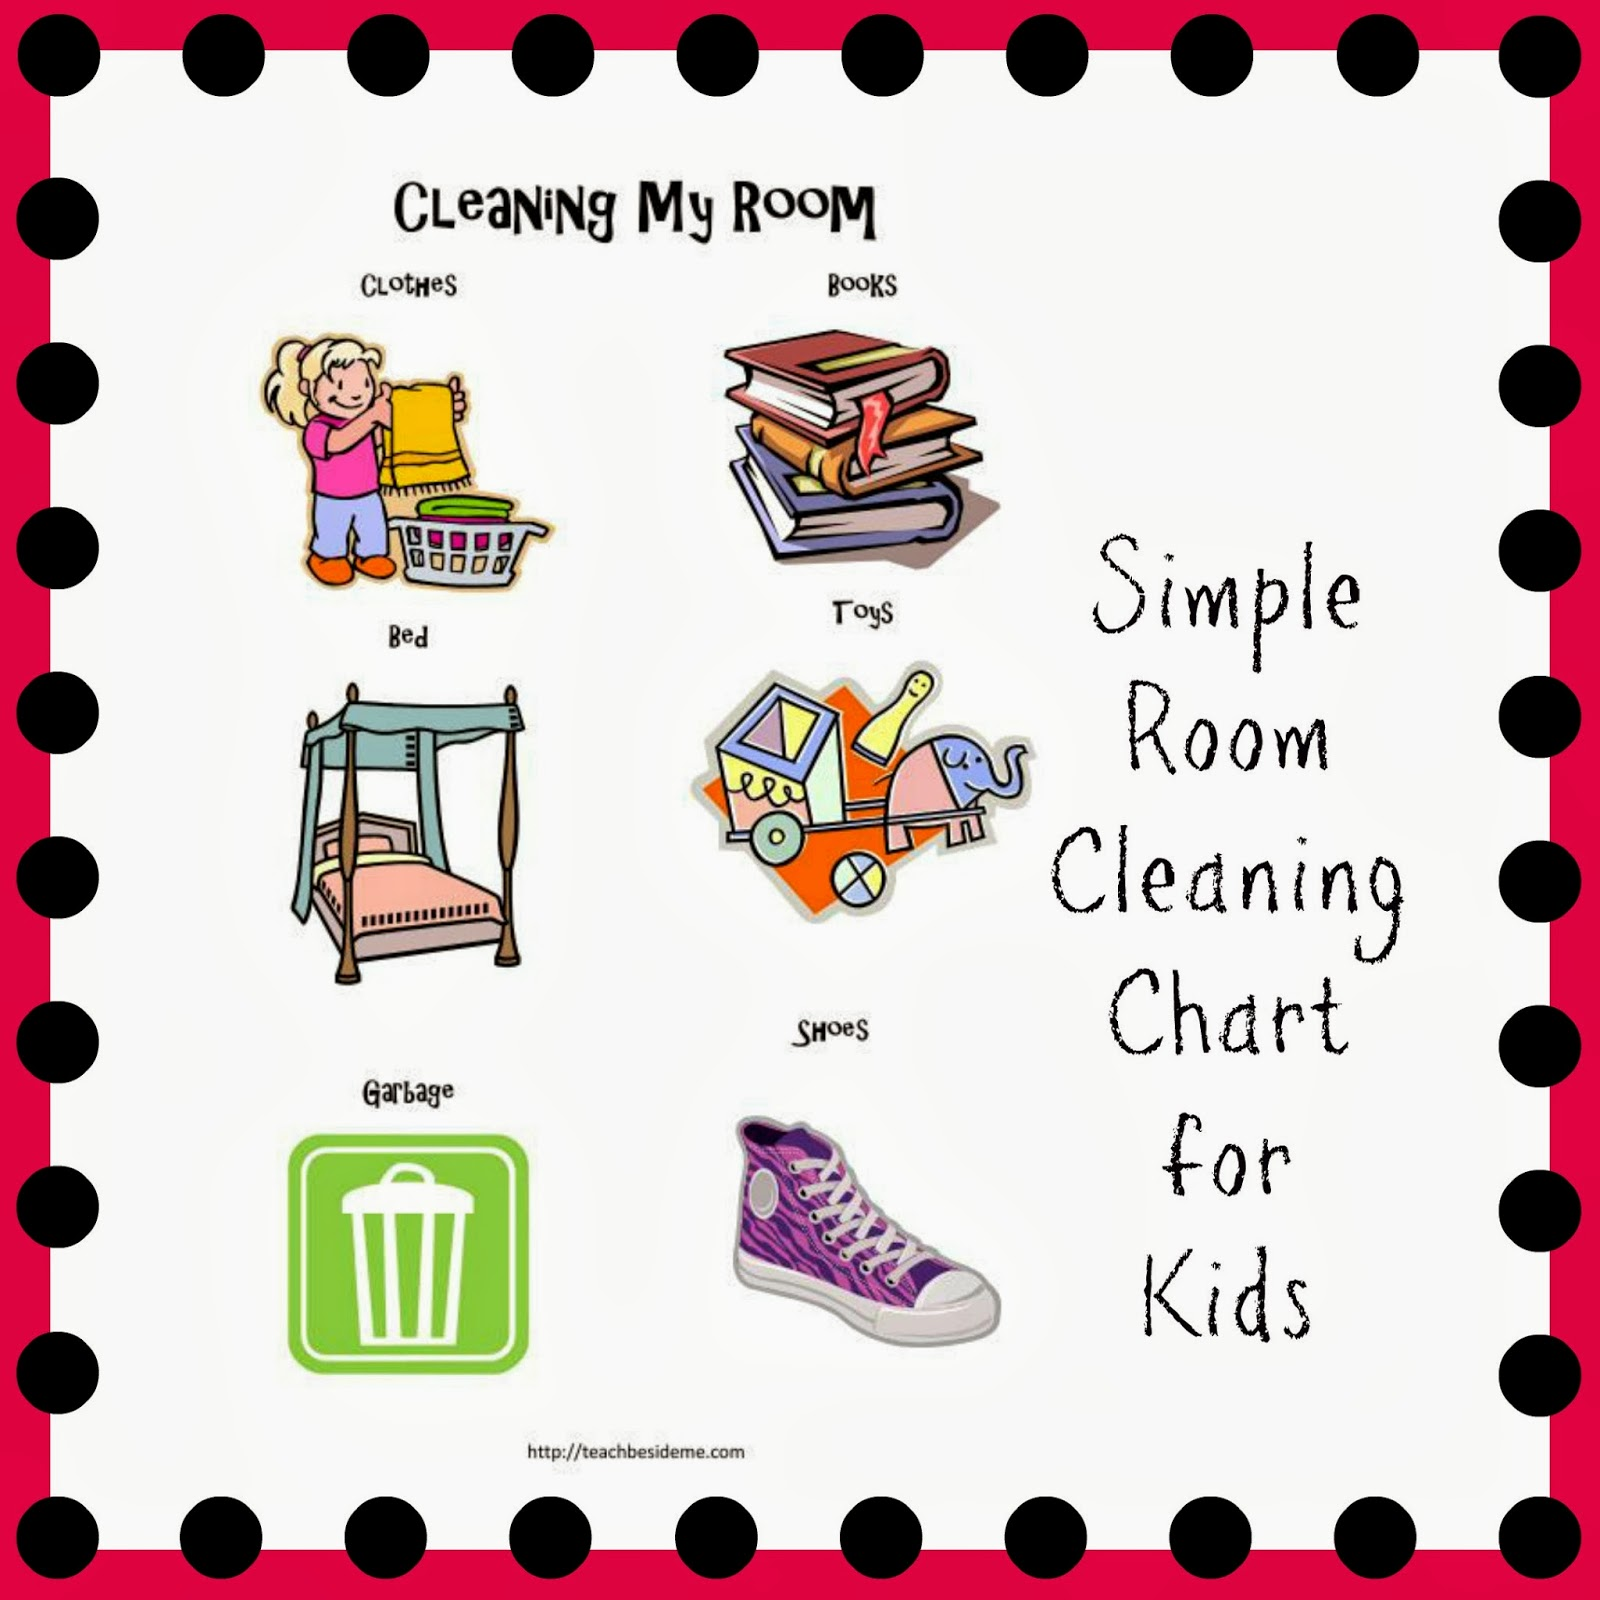 Kids cleaning room clipart - photo#41